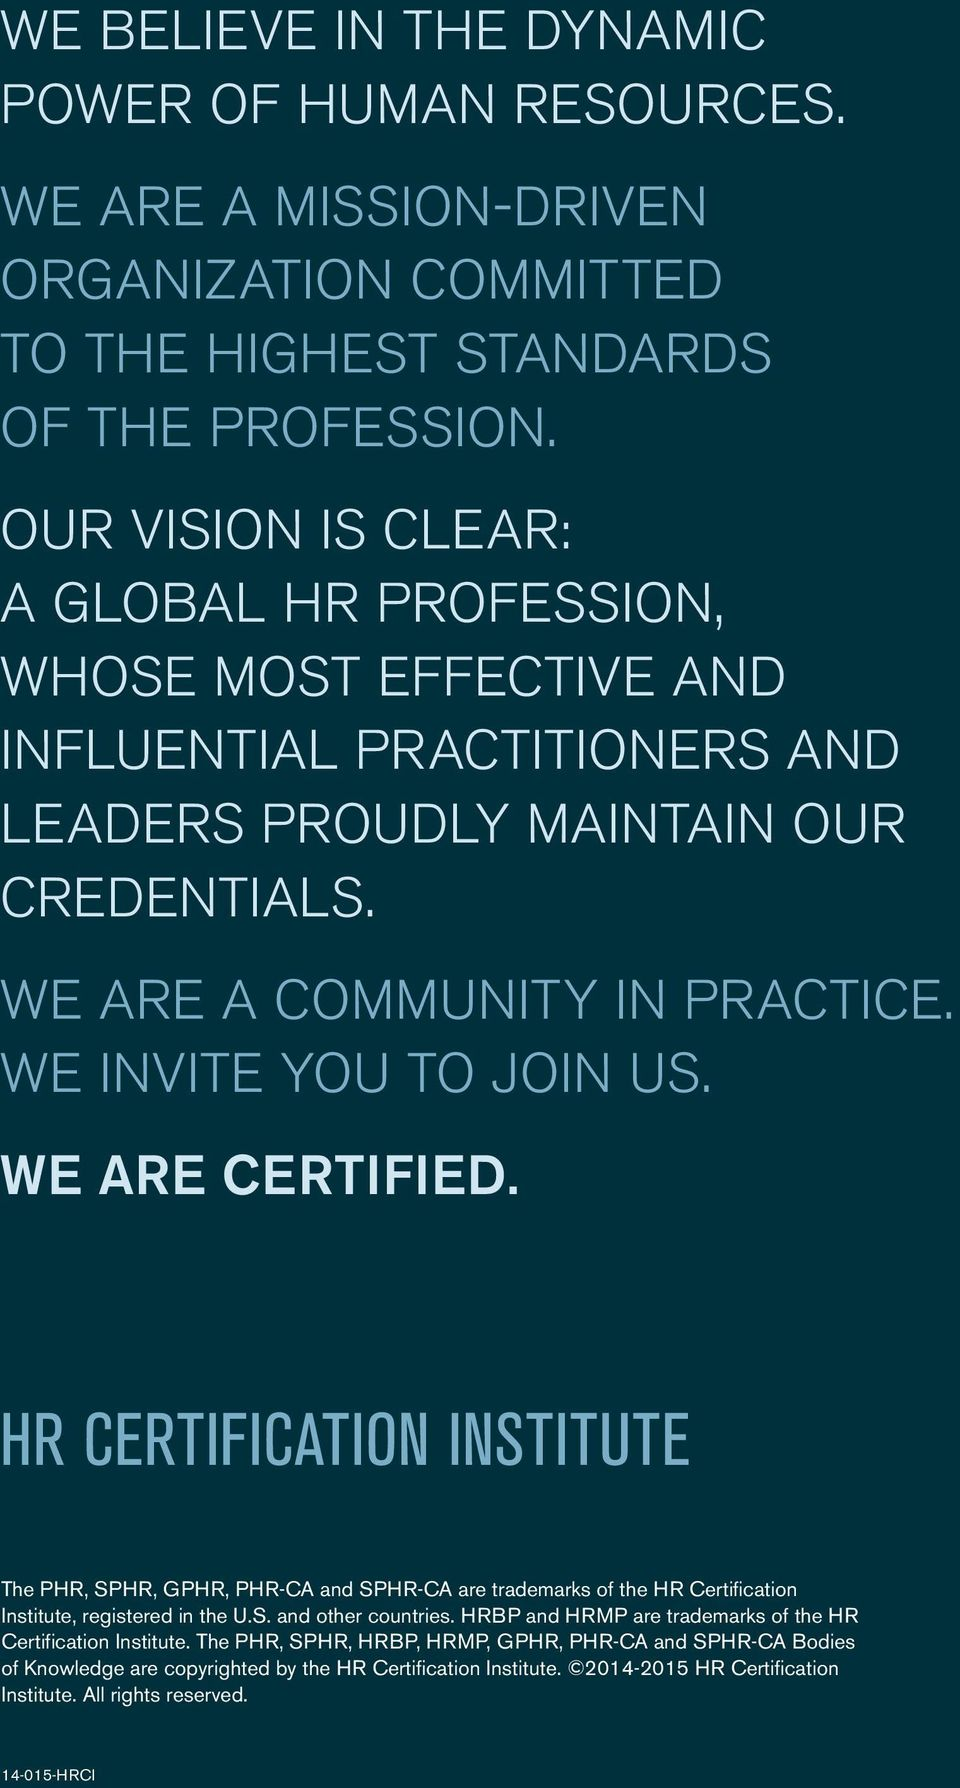 We invite you to join us. We are certified. HR Certification institute The PHR, SPHR, GPHR, PHR-CA and SPHR-CA are trademarks of the HR Certification Institute, registered in the U.S. and other countries.